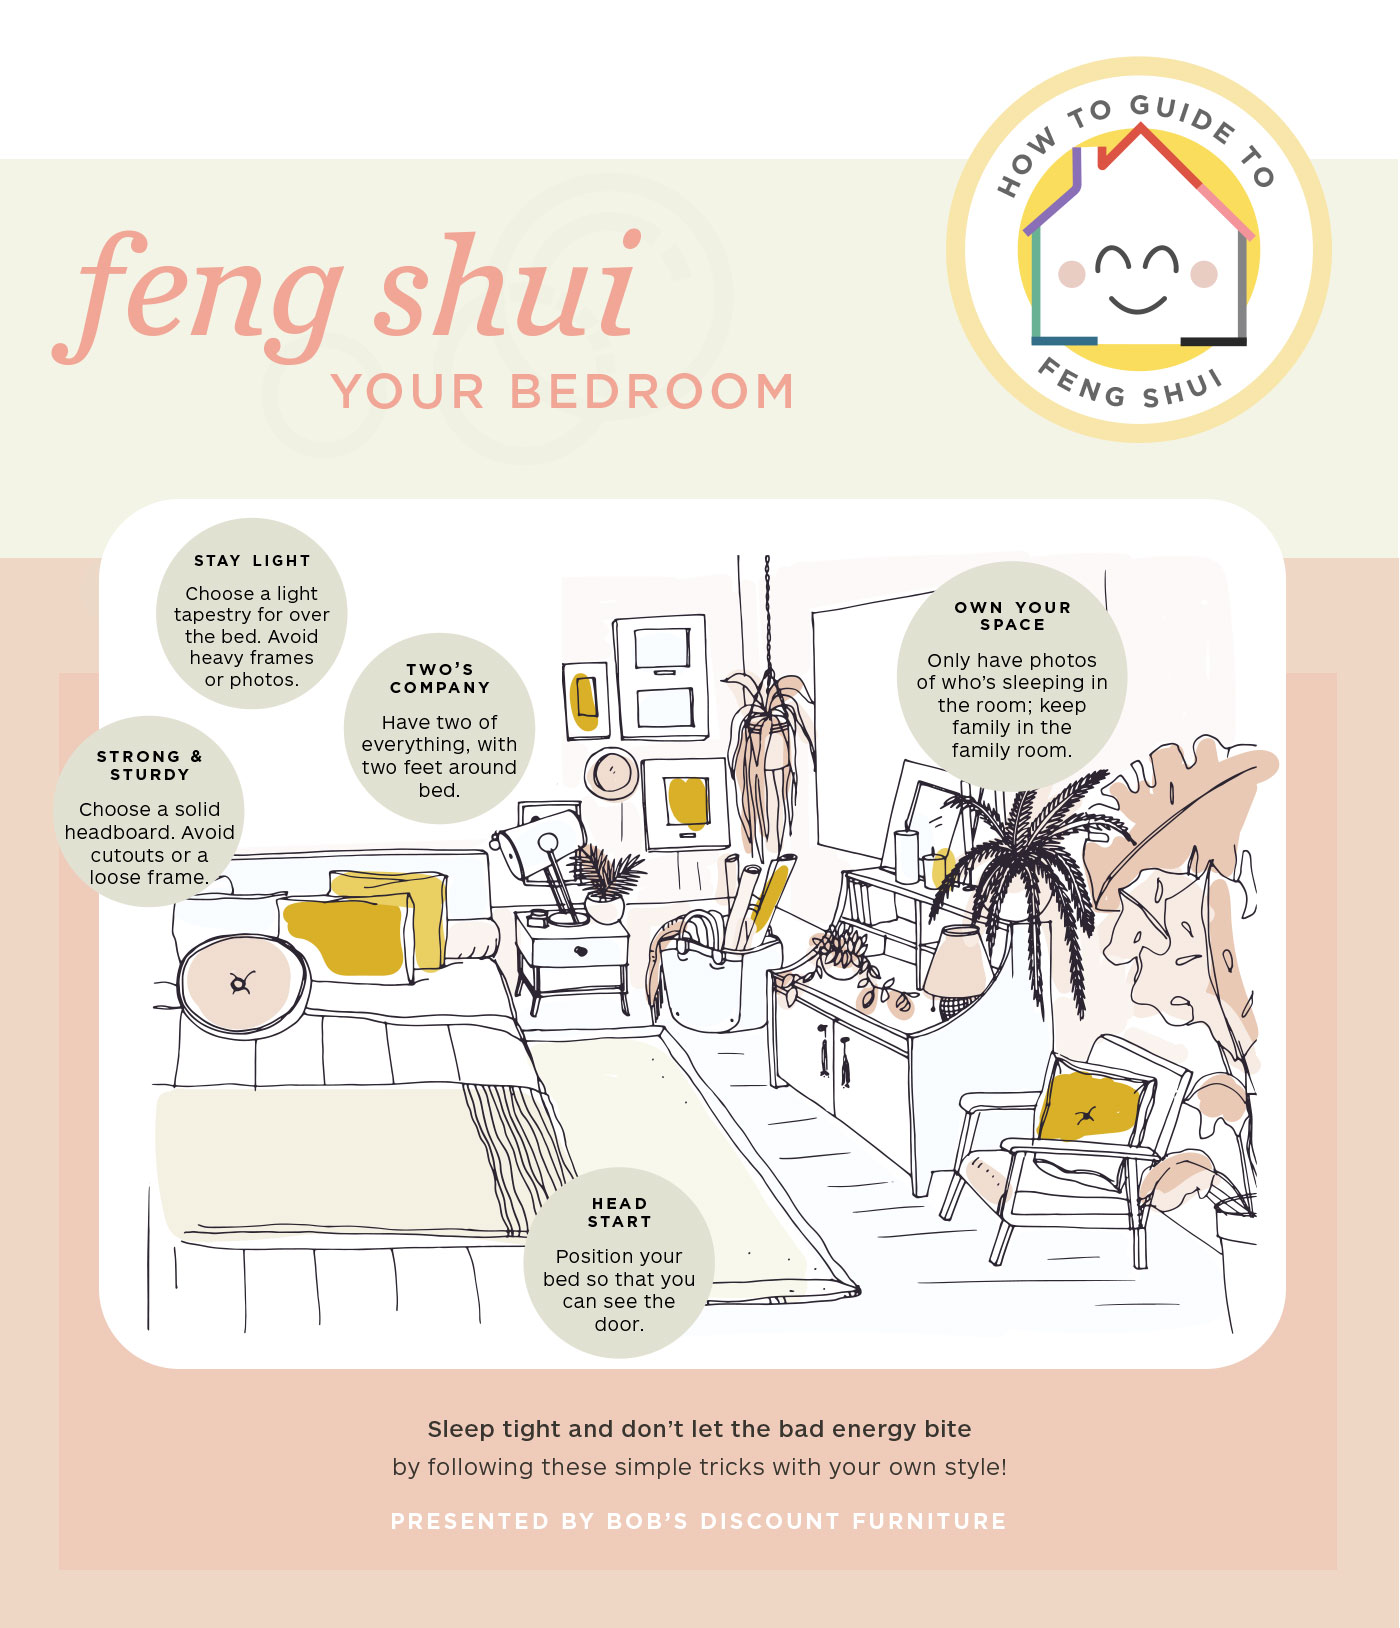 Bobs_FengShui_Bedroom.jpg